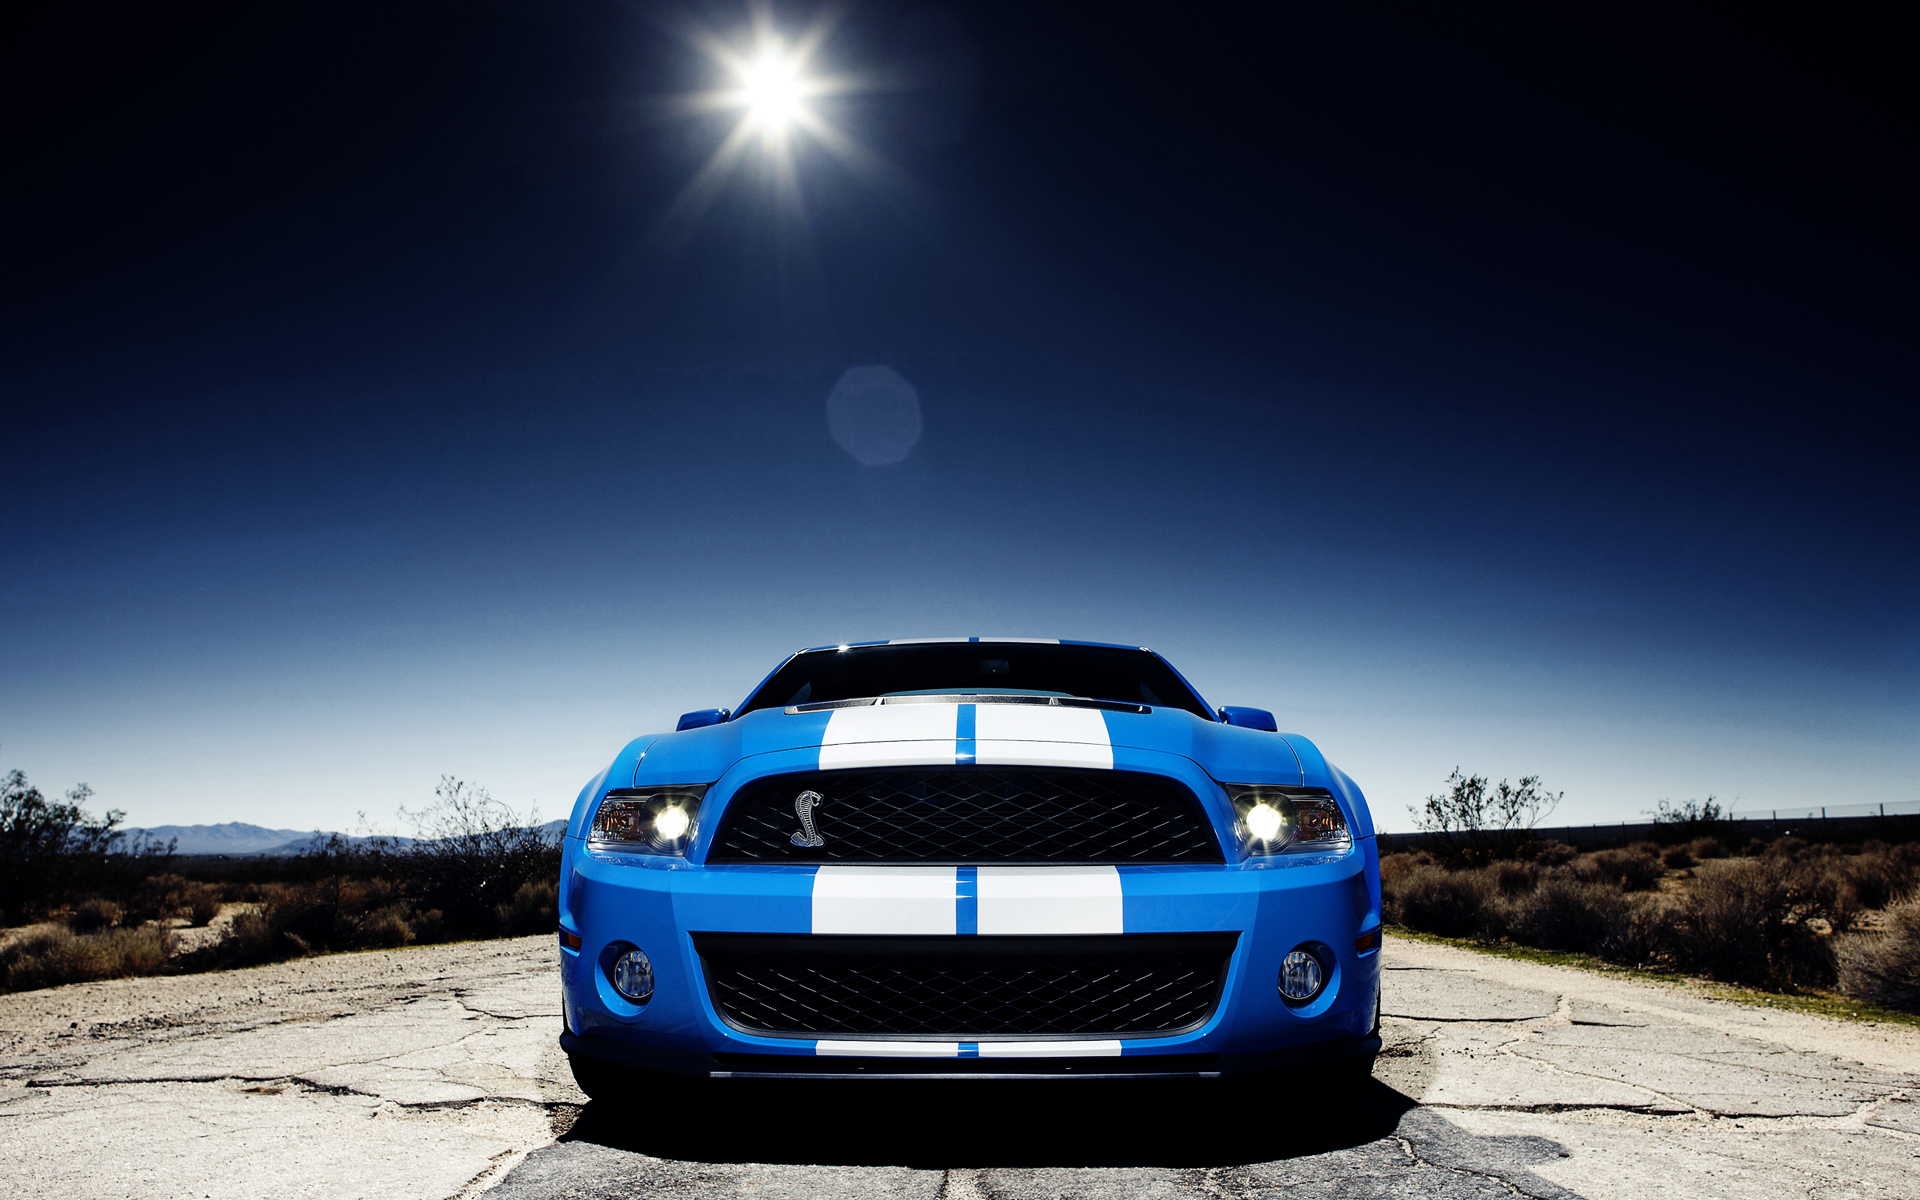 Mustang Shelby Cobra Gt 500 Computer Wallpapers Desktop Backgrounds 1920x1200